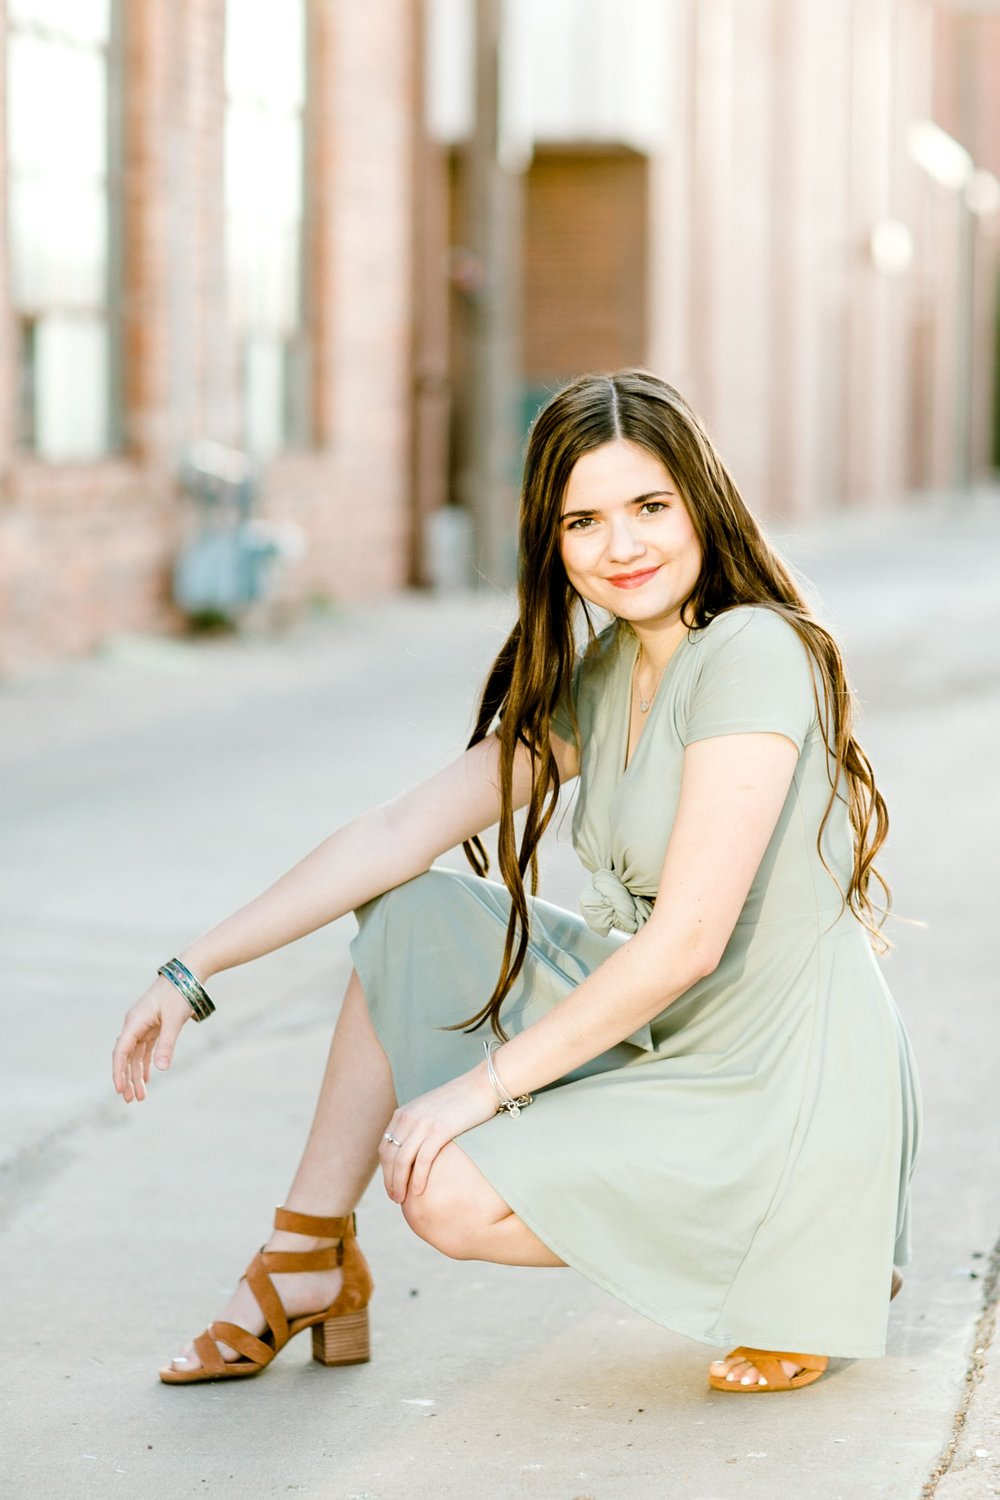 Emma-Stapleton-High-School-Senior-Photographer-Lubbock_0028.jpg